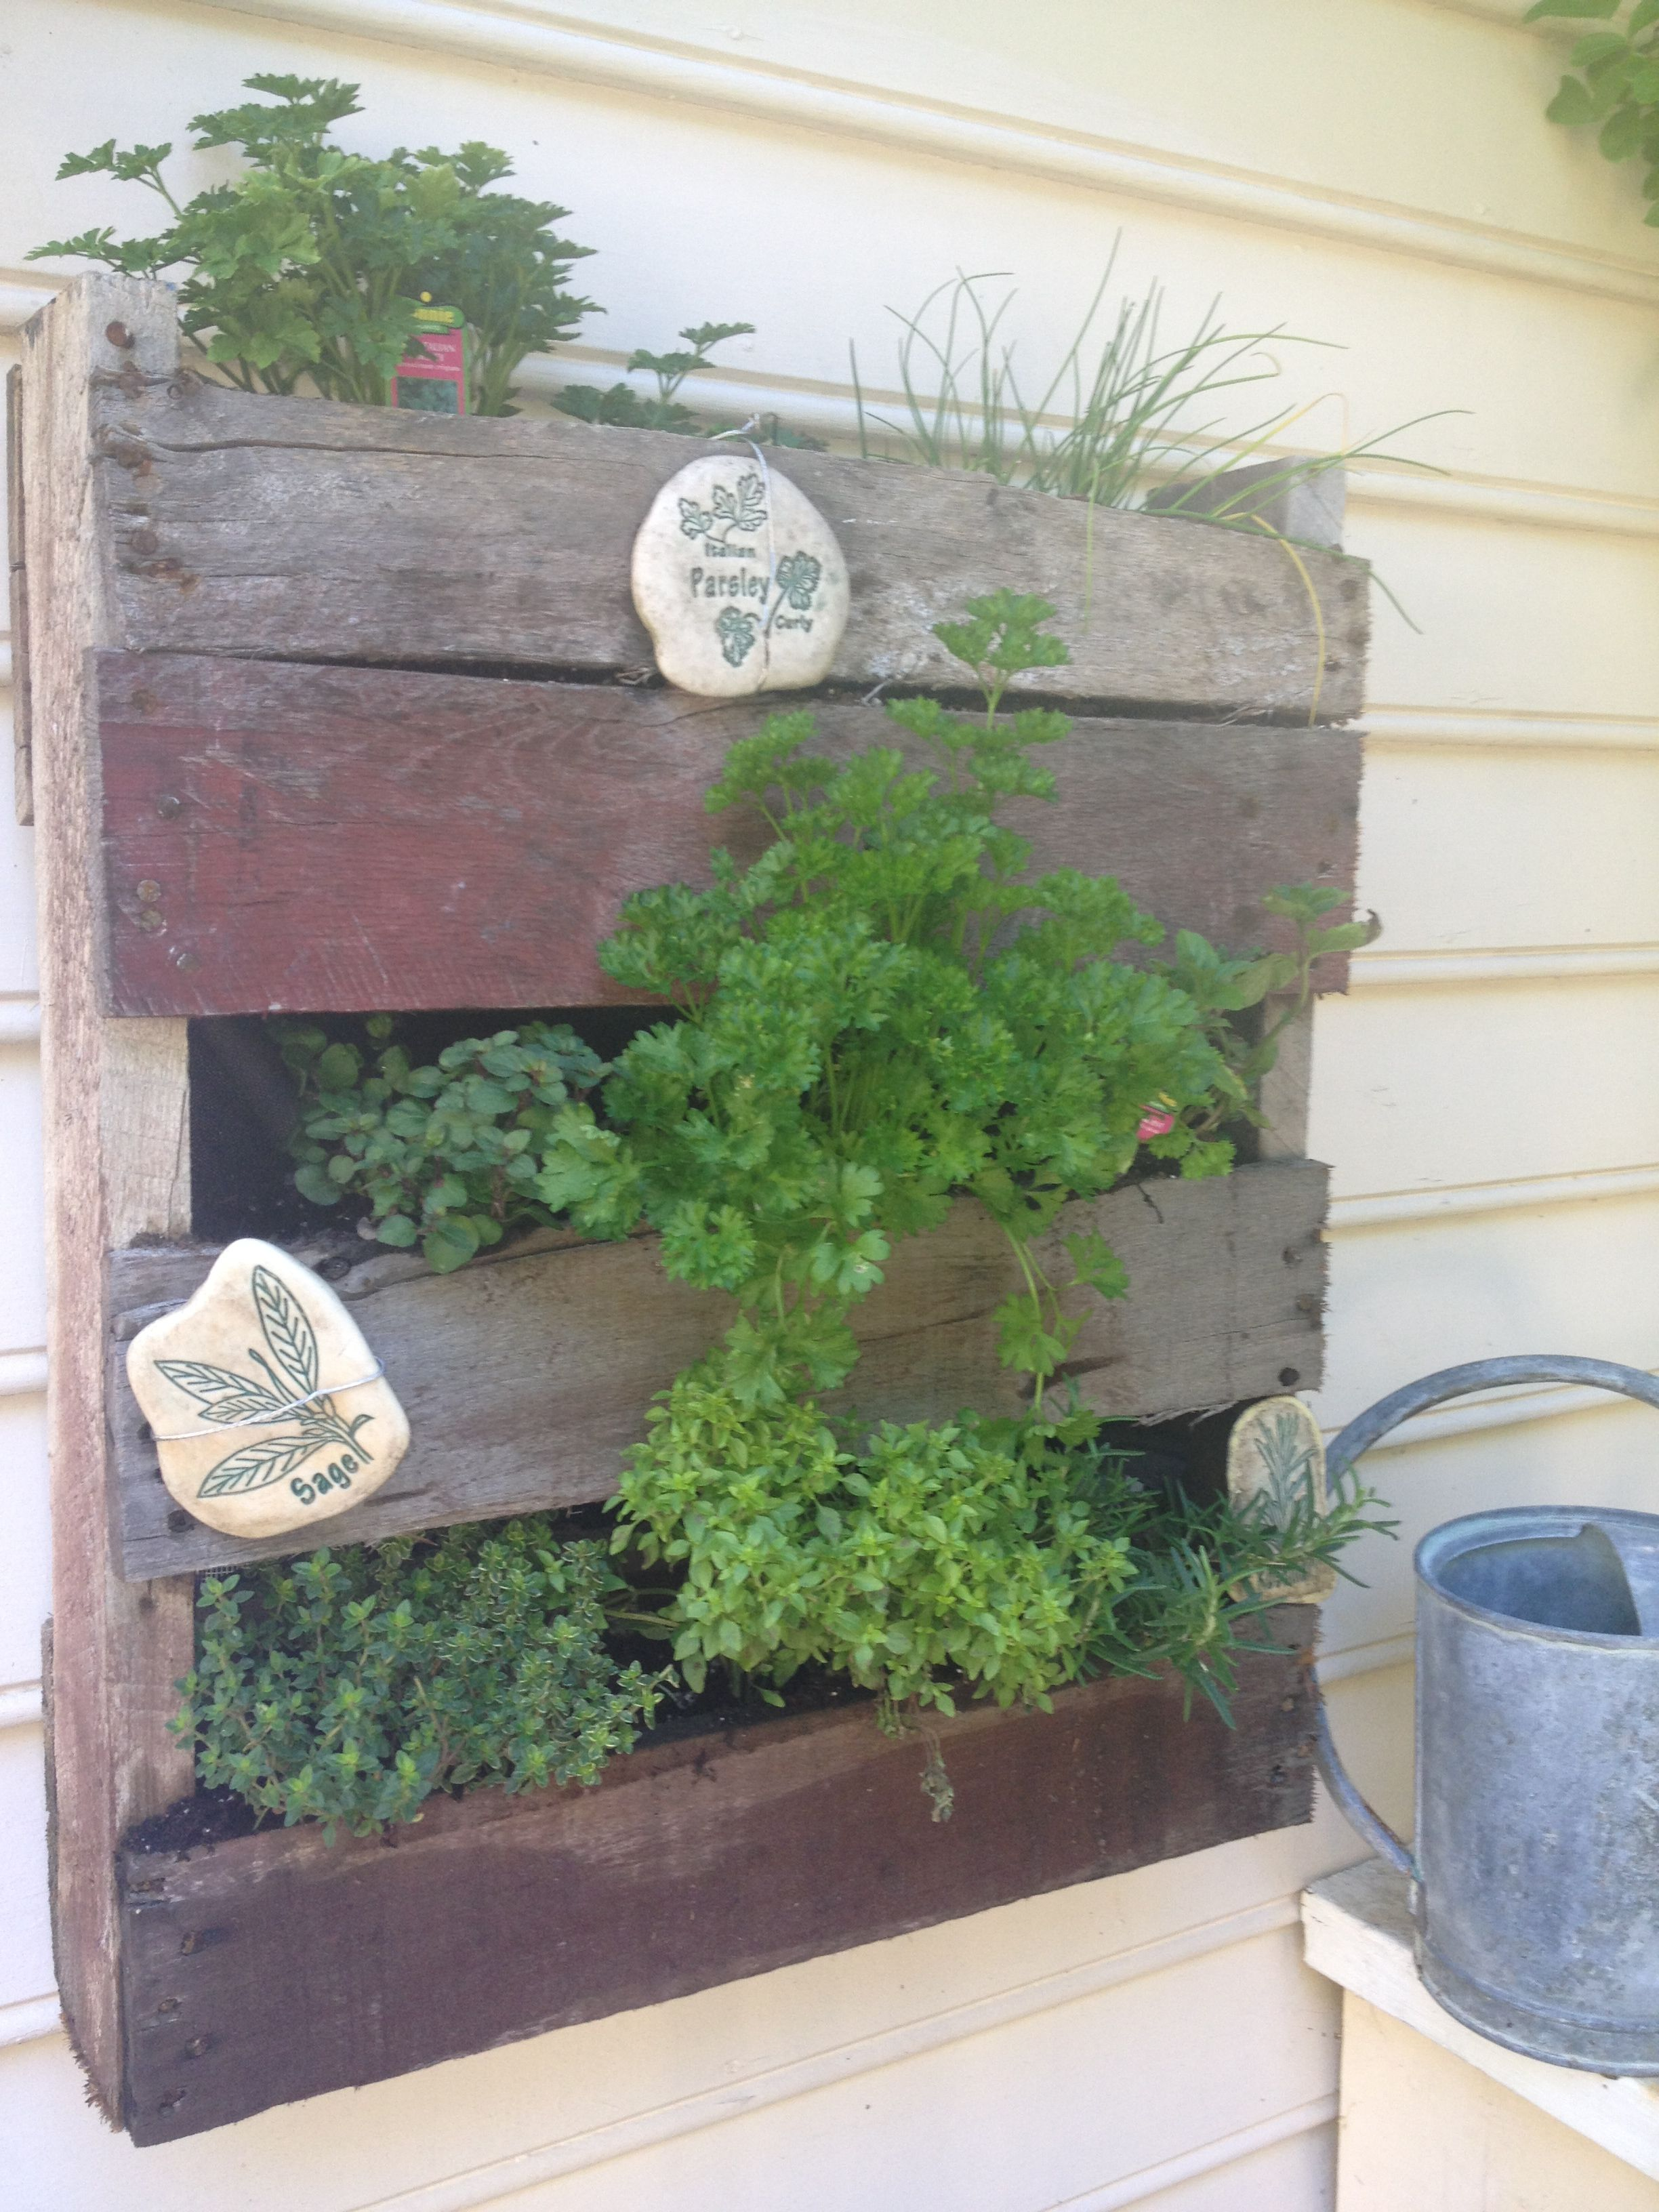 Diy herb garden made of pallets refresh your eyes and mind with pallet - Mini Pallet Herb Garden Just Trim To The Size You Want Hang It